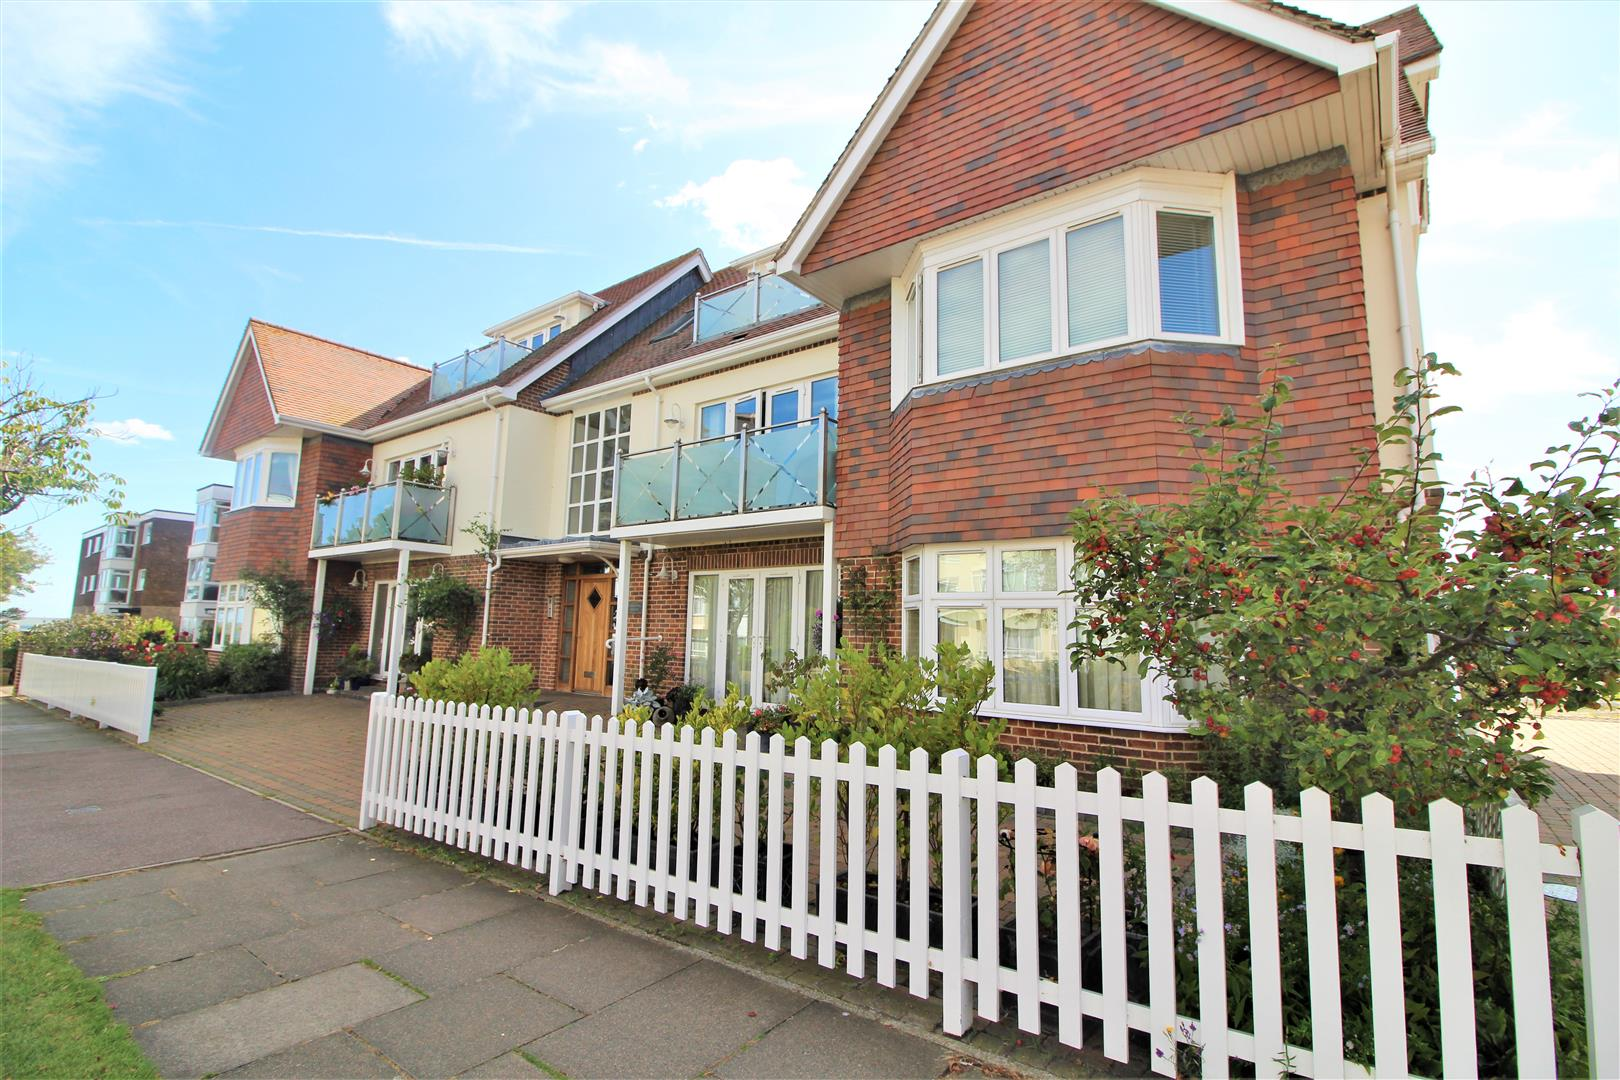 5 Queens Road, Frinton-On-Sea, Essex, CO13 9BH